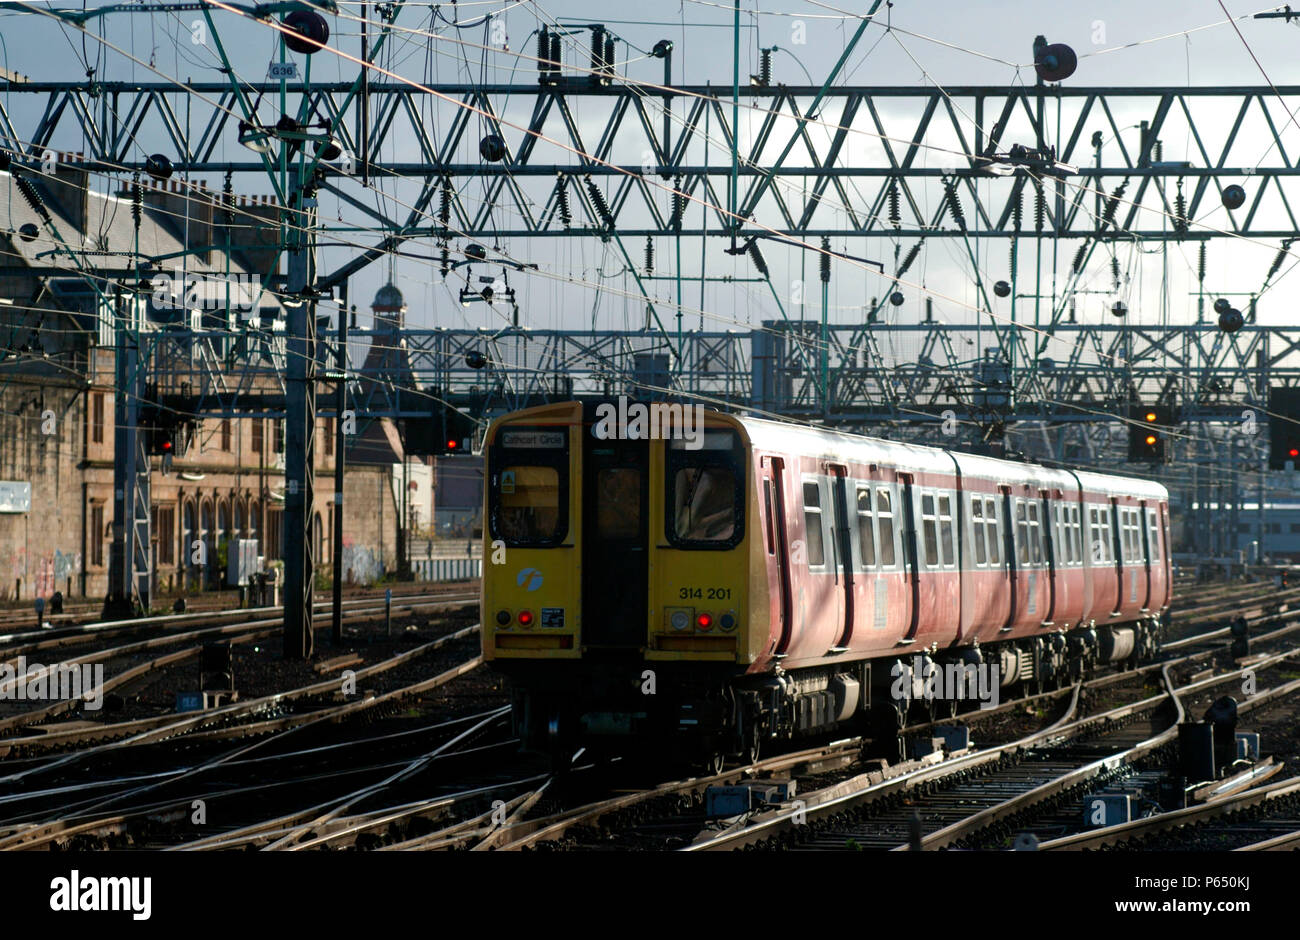 314.201 departs from Glasgow Central with a Cathcart Circle local service. November 2004. - Stock Image